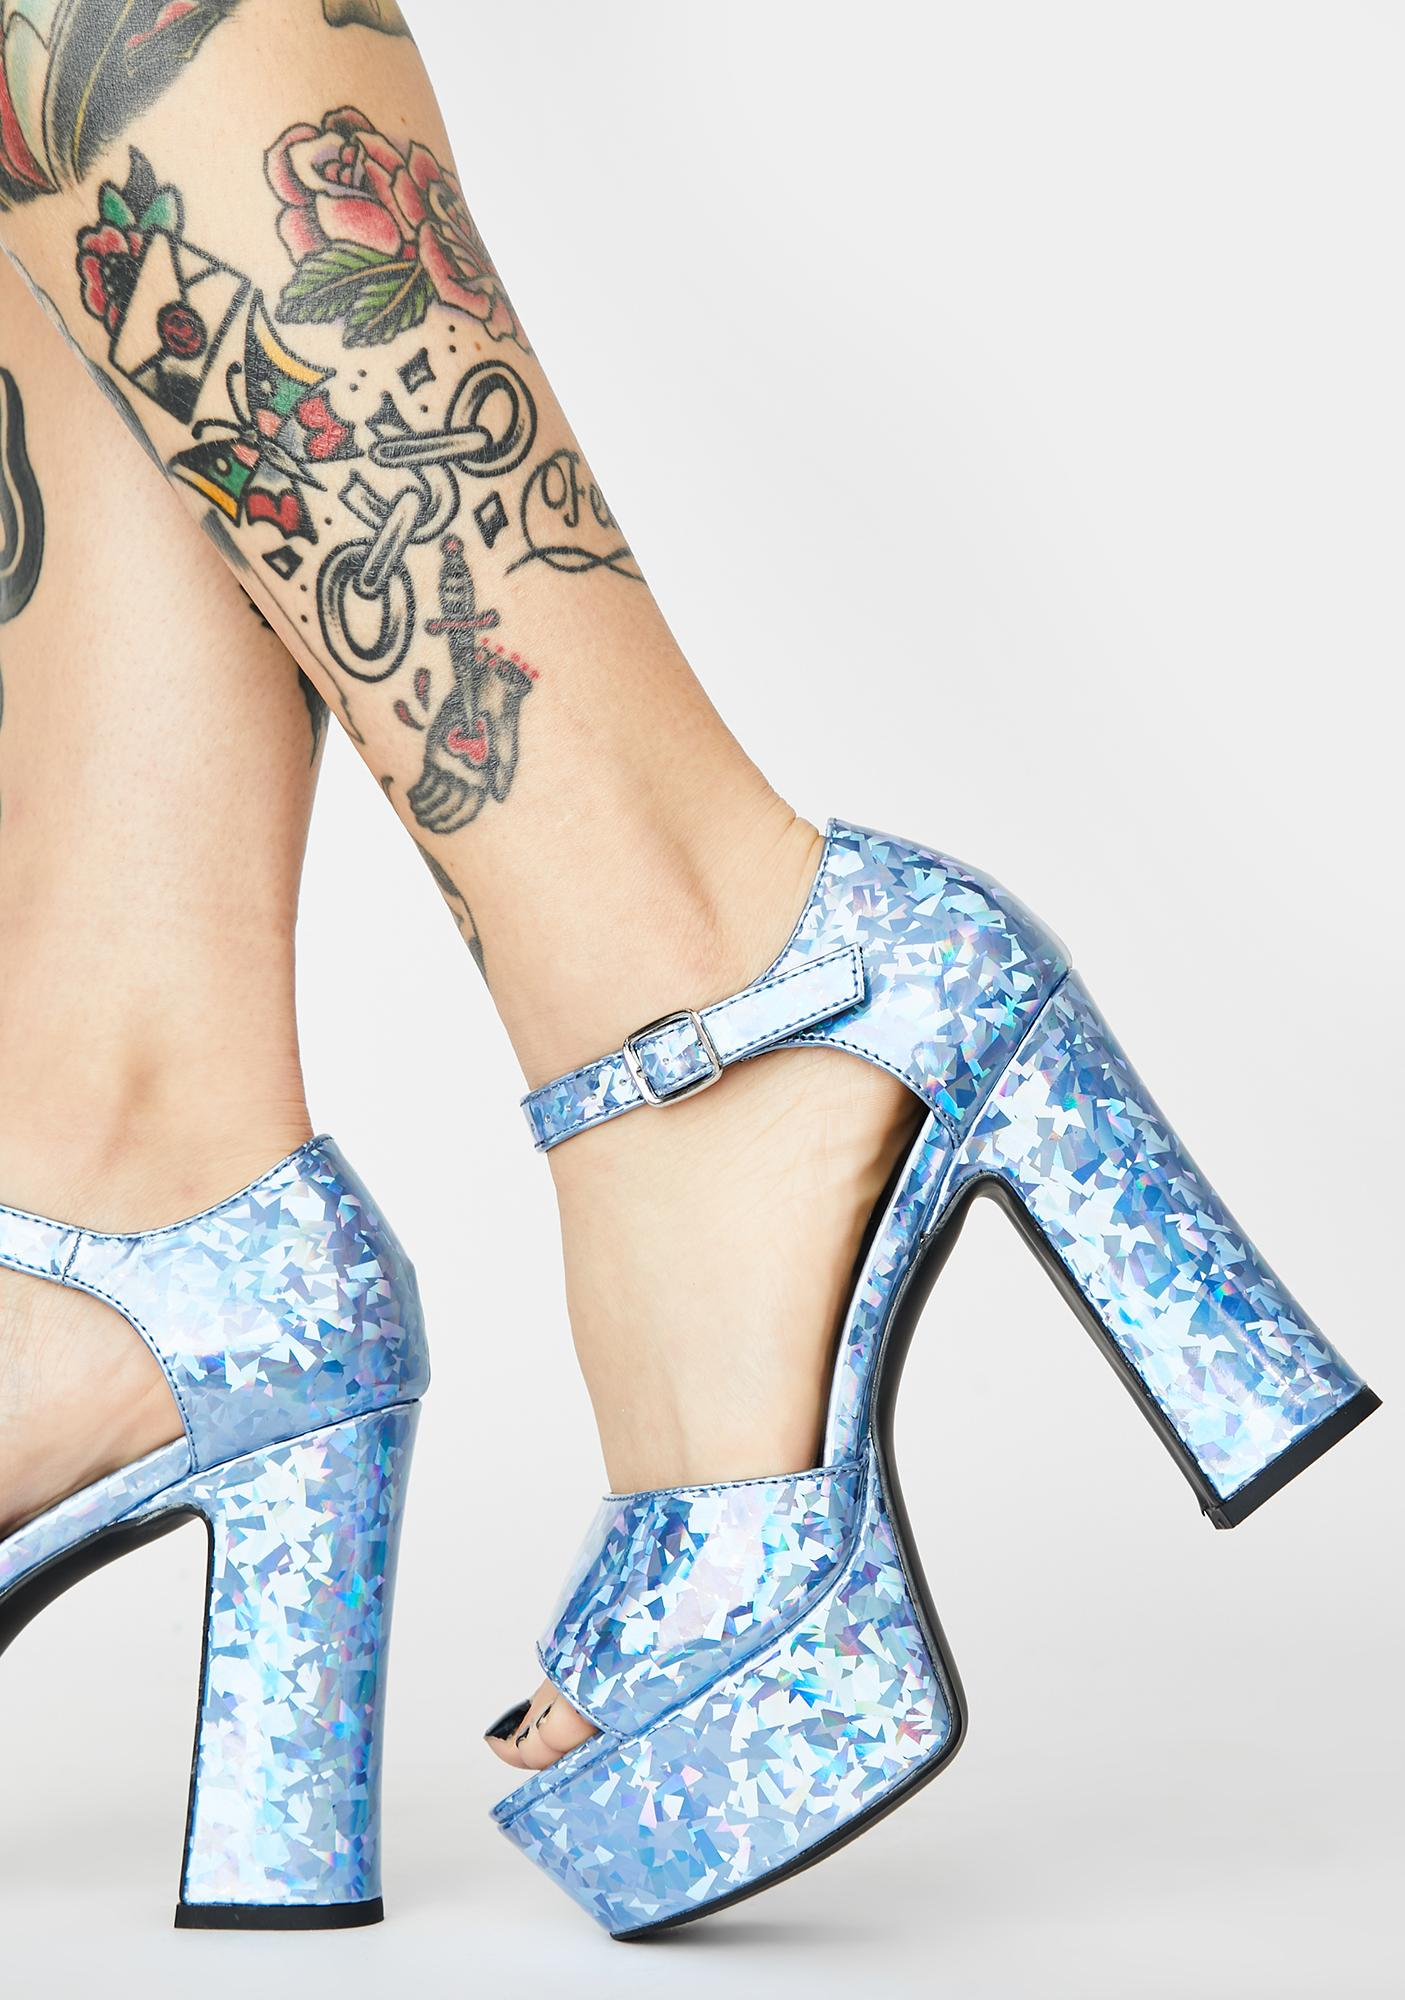 HOROSCOPEZ Crystal Realm Holographic Heels